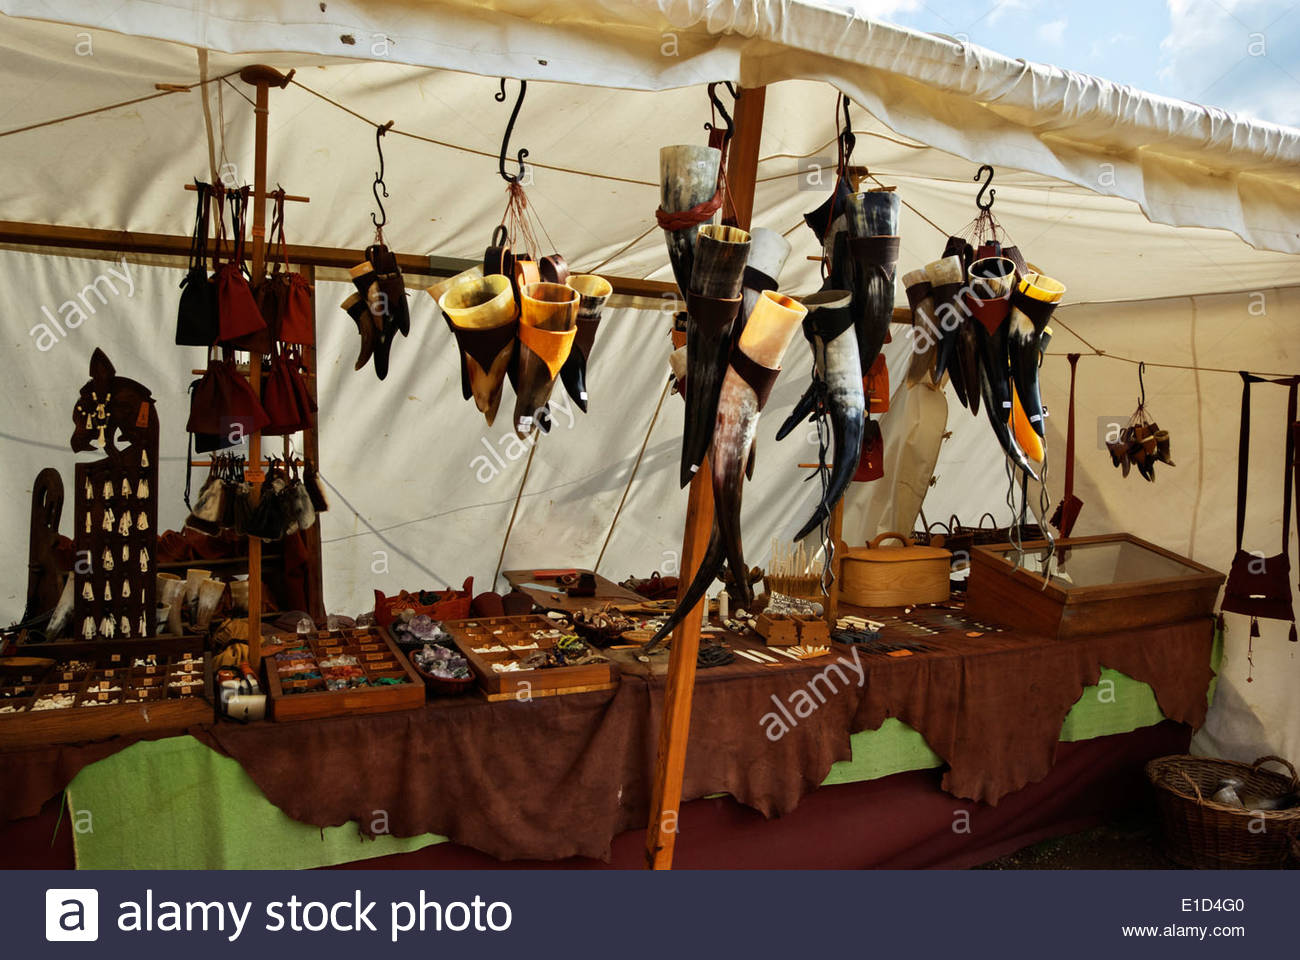 Leather, bone and horn souvenirs are on offer to tourists who visit the Viking market town of Haithabu in northern Germany. - Stock Image